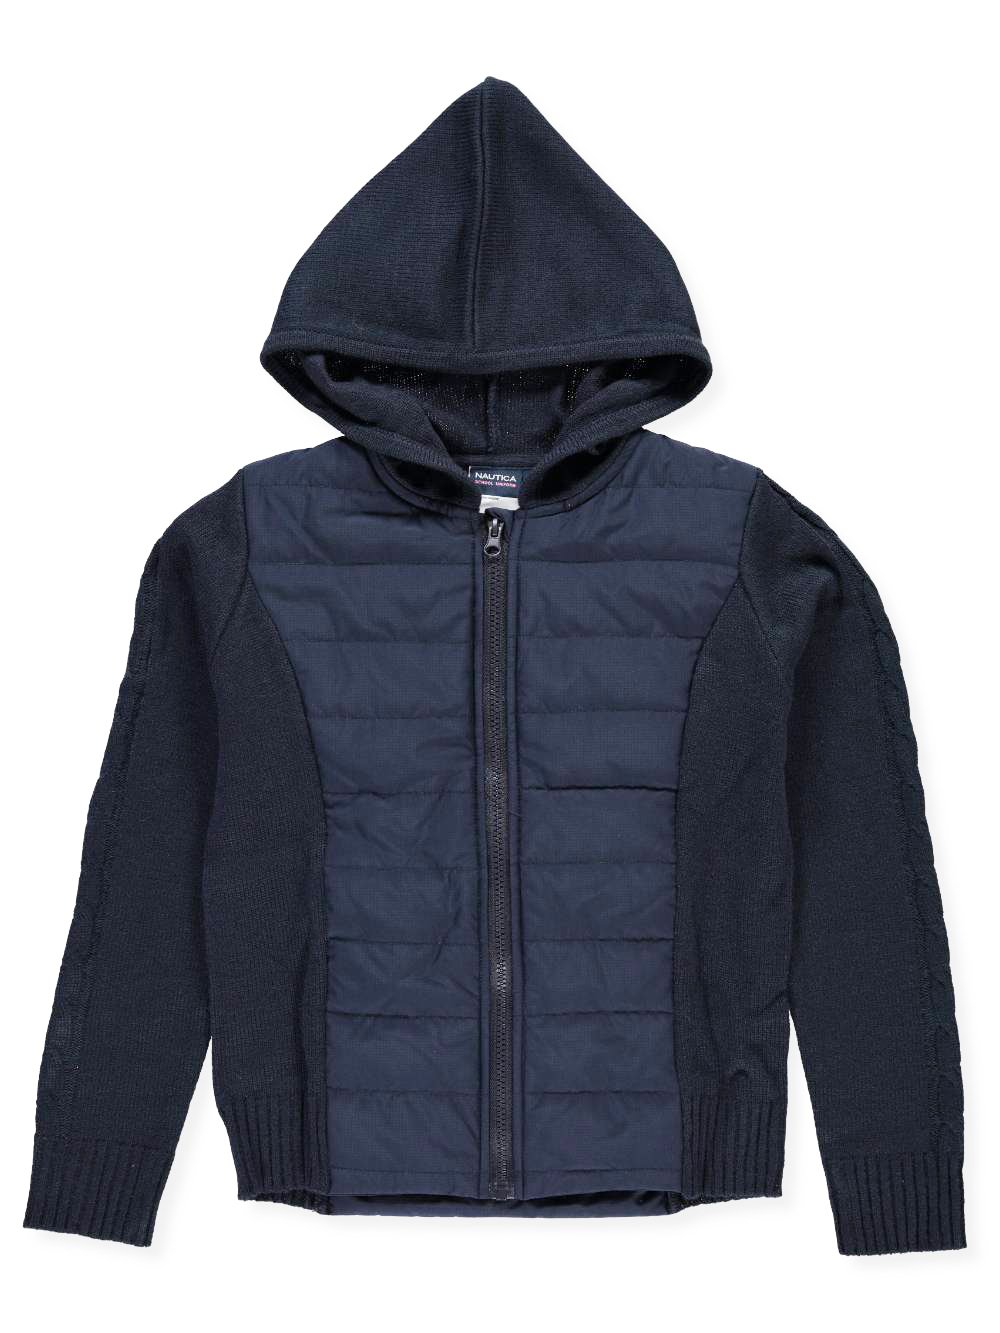 Nautica Big Girls' Quilted Hooded Jacket - Navy, 16